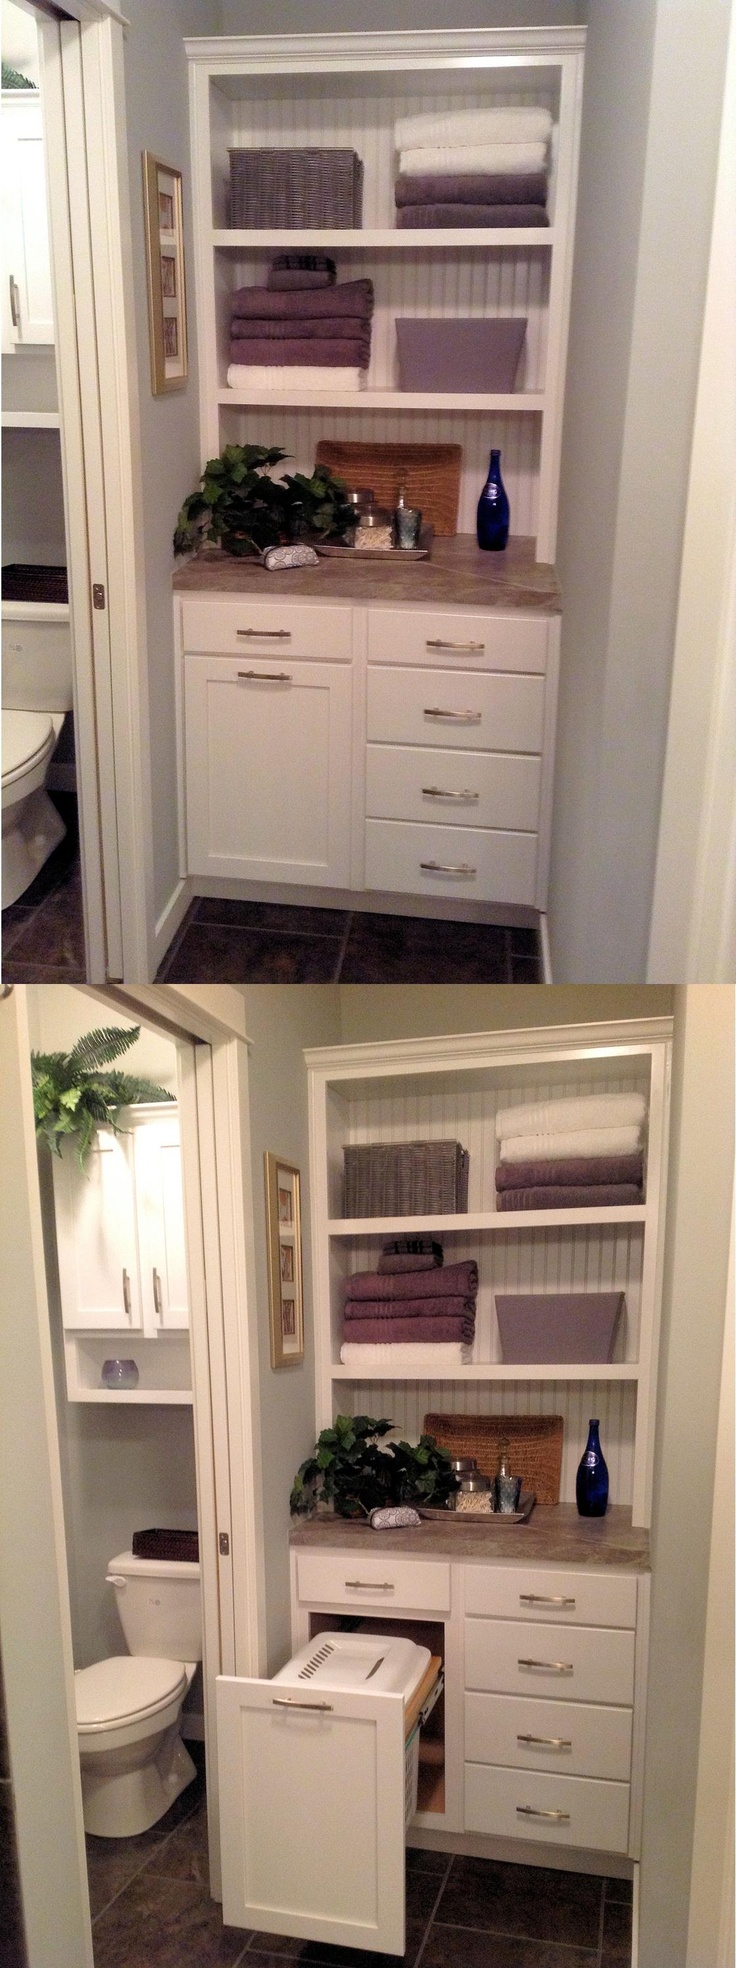 Custom Spa Cabinet Tower With Pull Out Hamper To Replace Closet In Bathroom Liked On